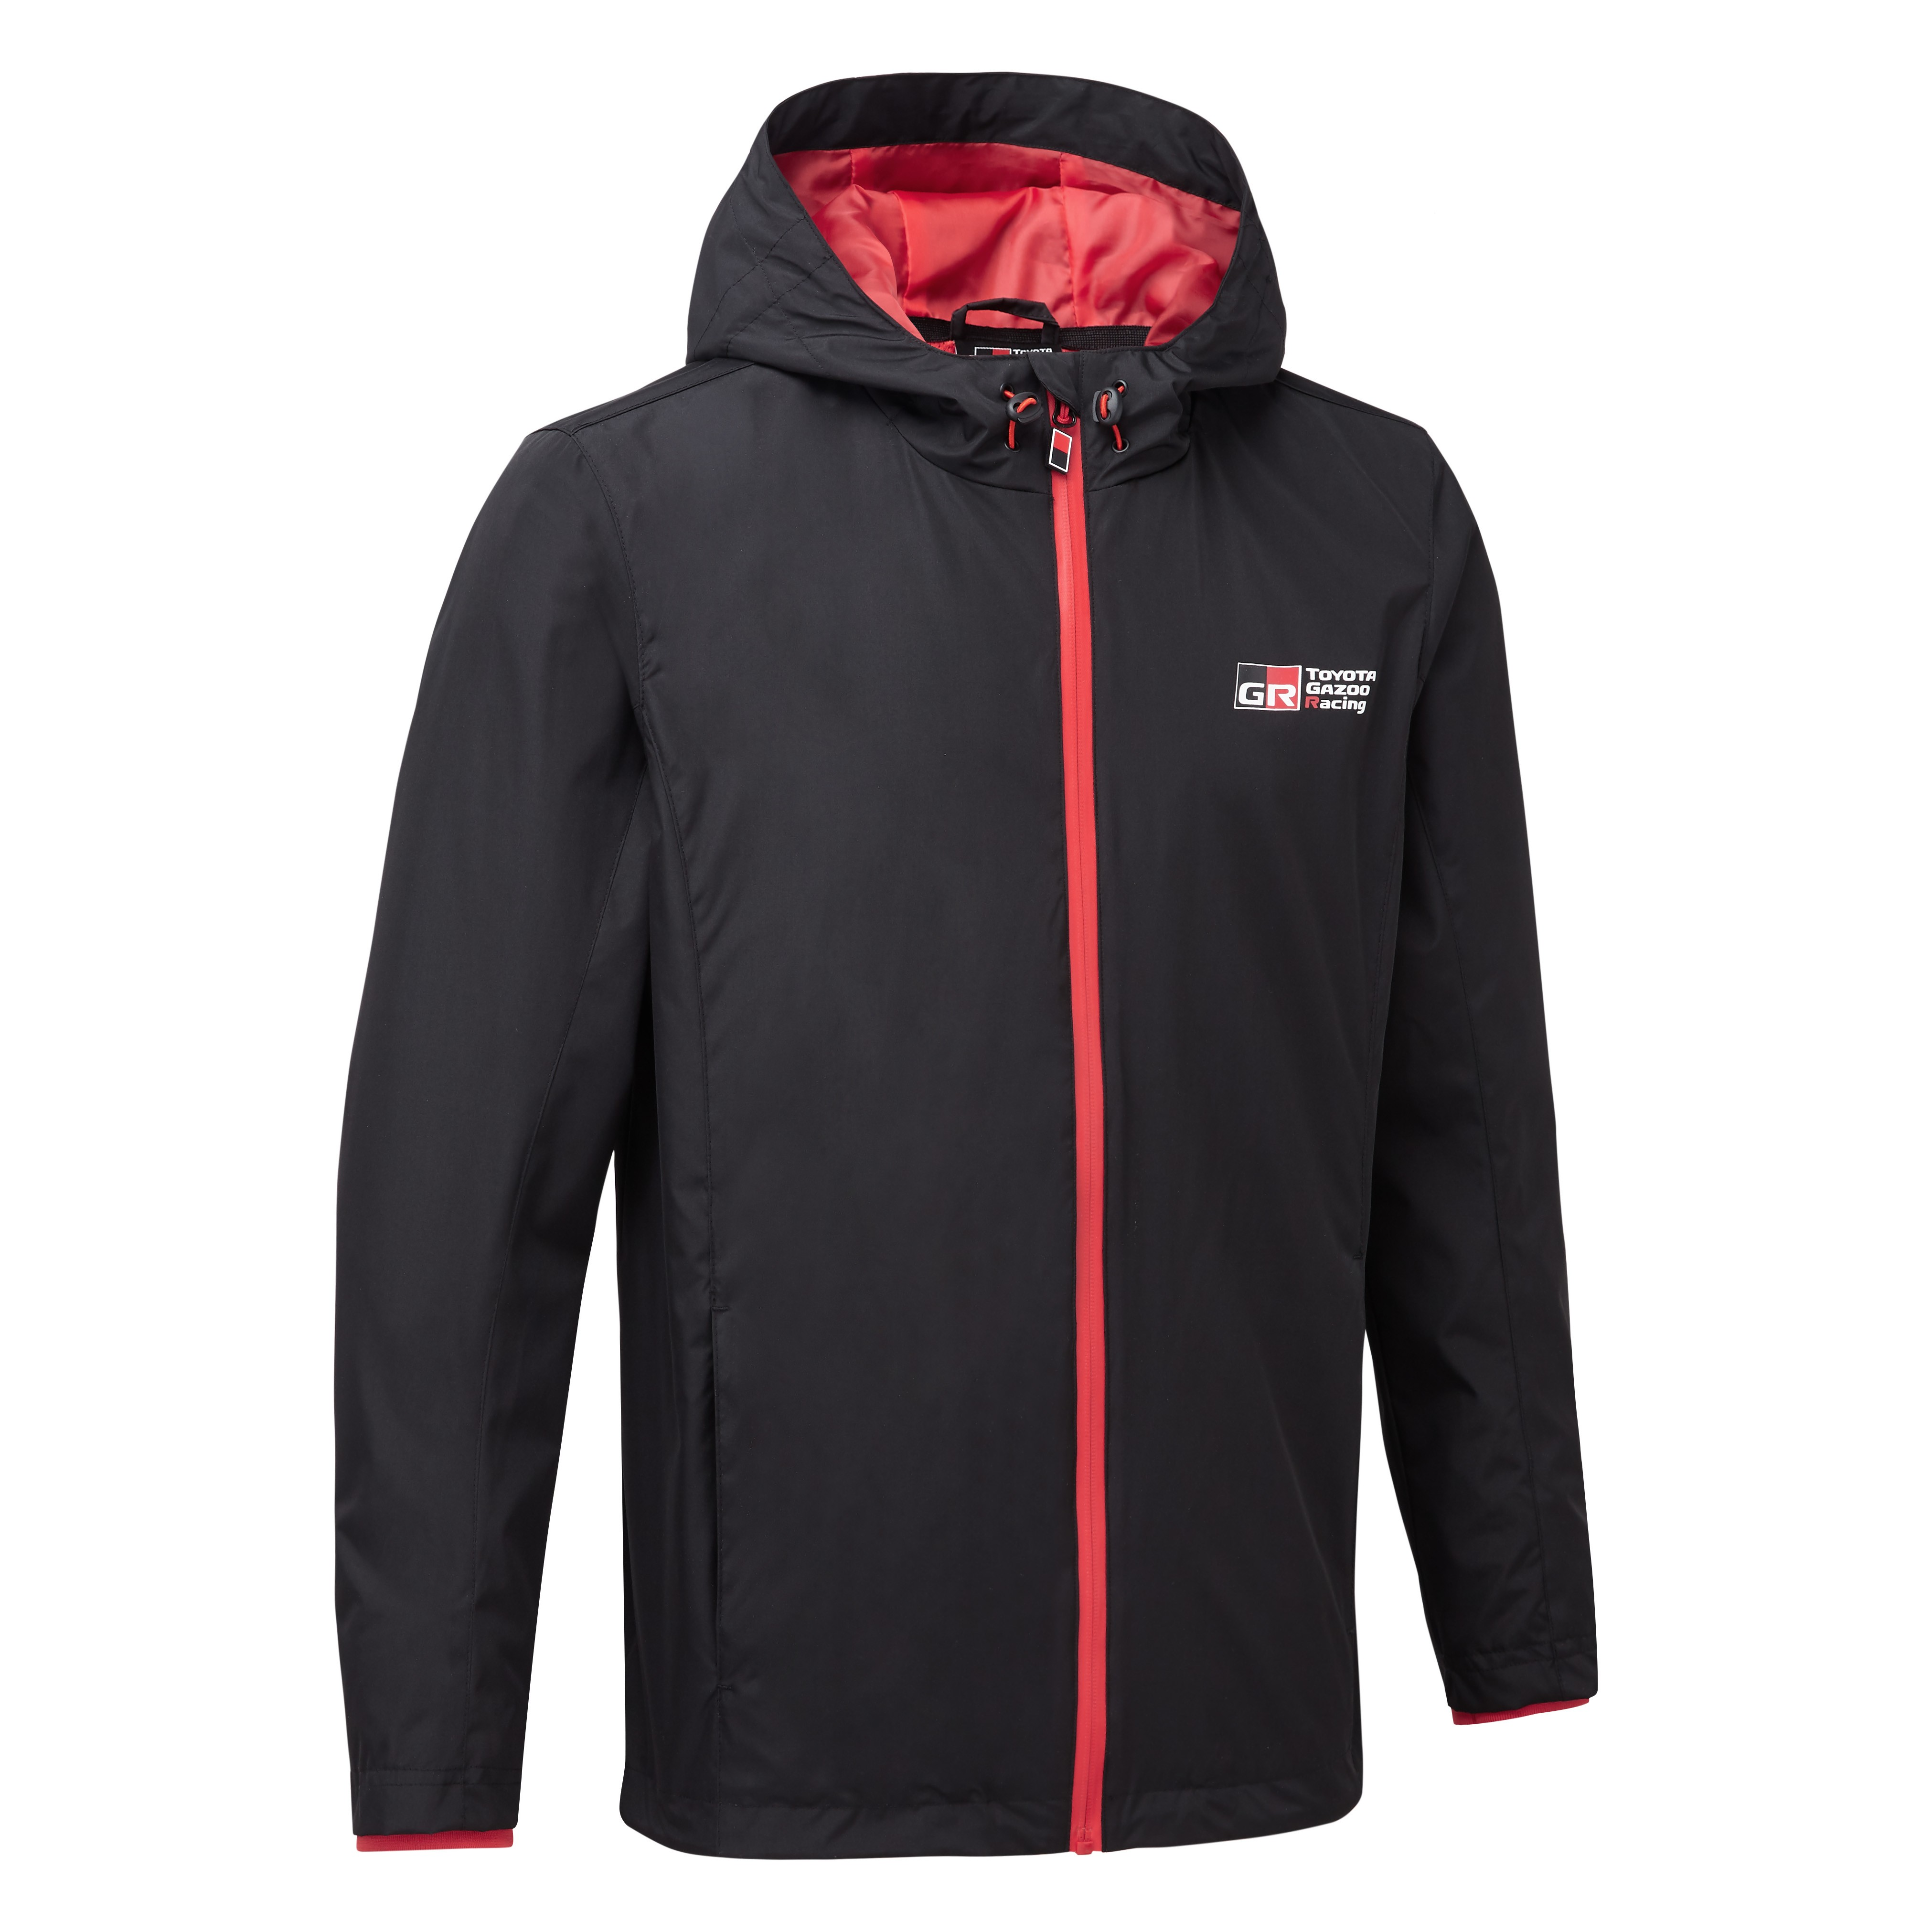 Tacoma Back Pages >> TGR 18 Team Light Weight Jacket - TOYOTA GAZOO Racing TGR - All products - Menu